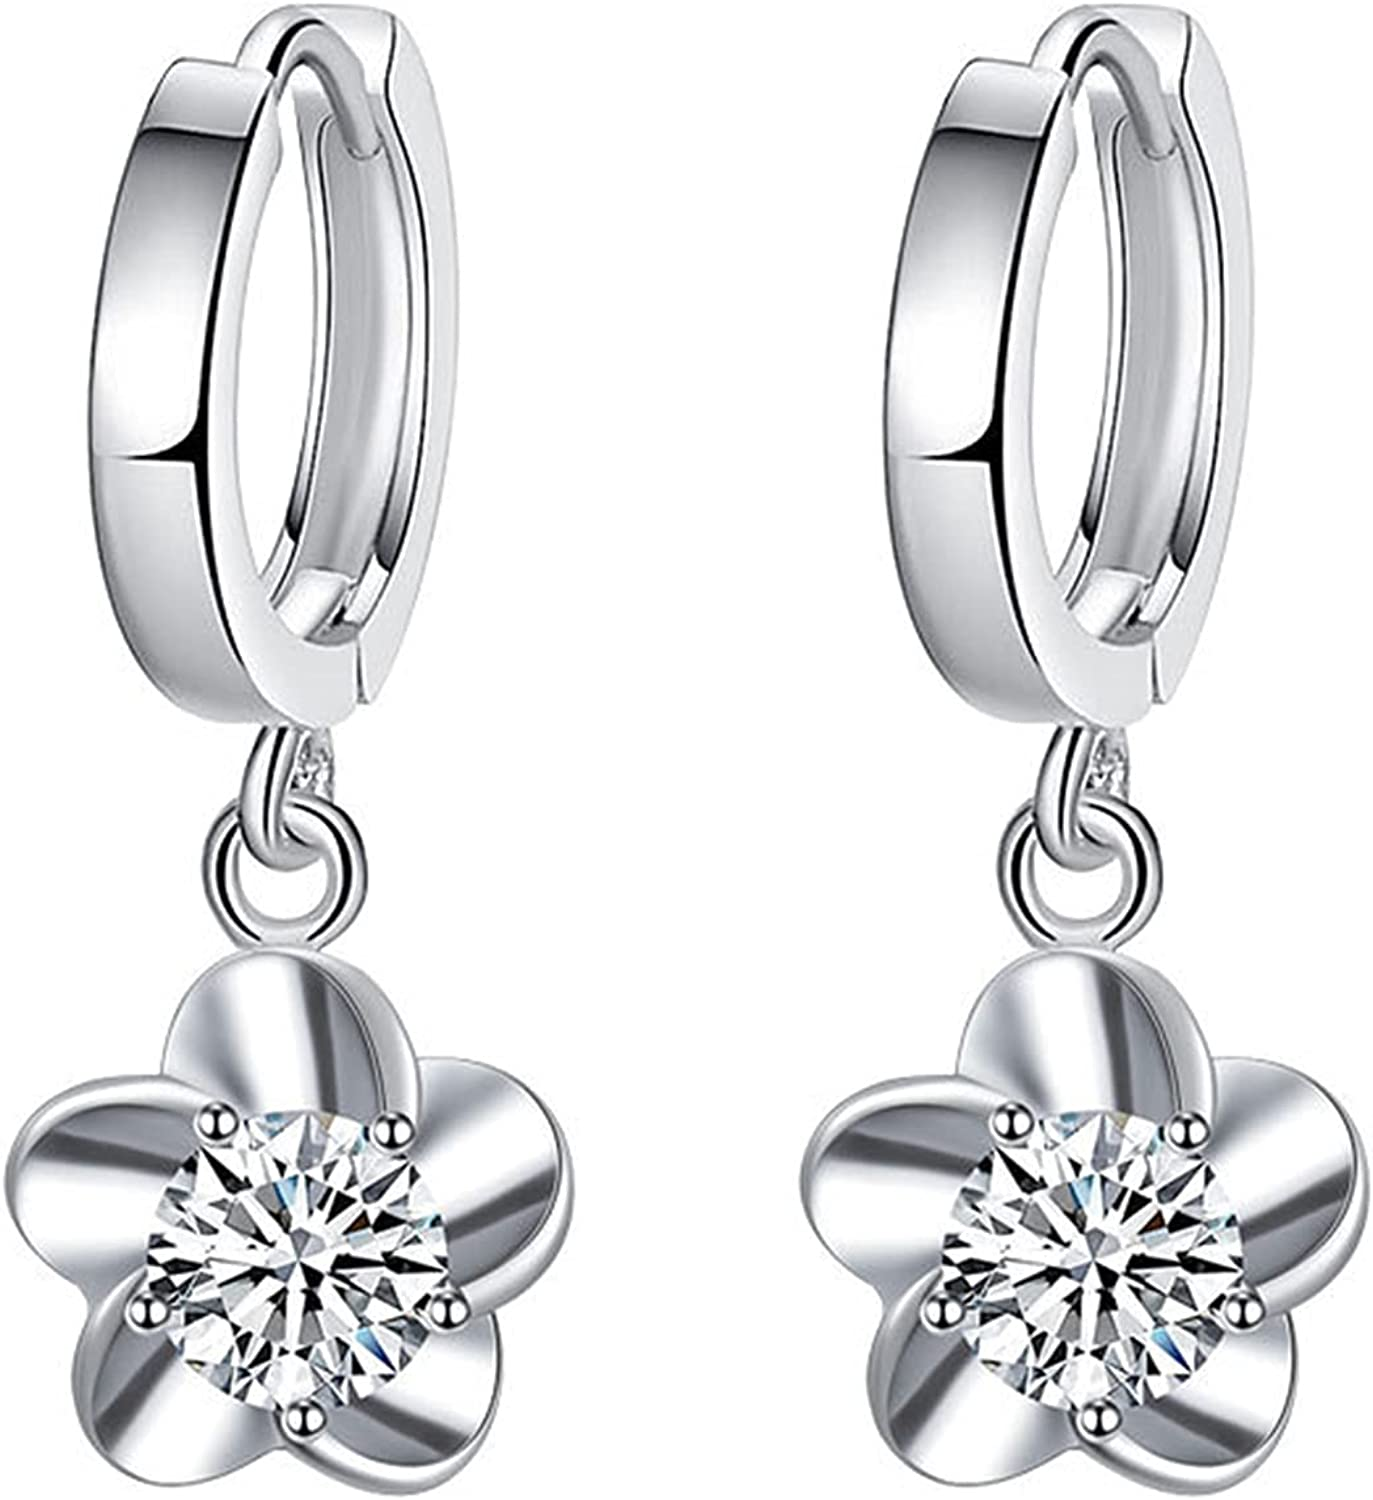 925 Silver Plated Charm Small Hoop My Flower NEW before selling online shop ☆ Tiny Flash Earrings